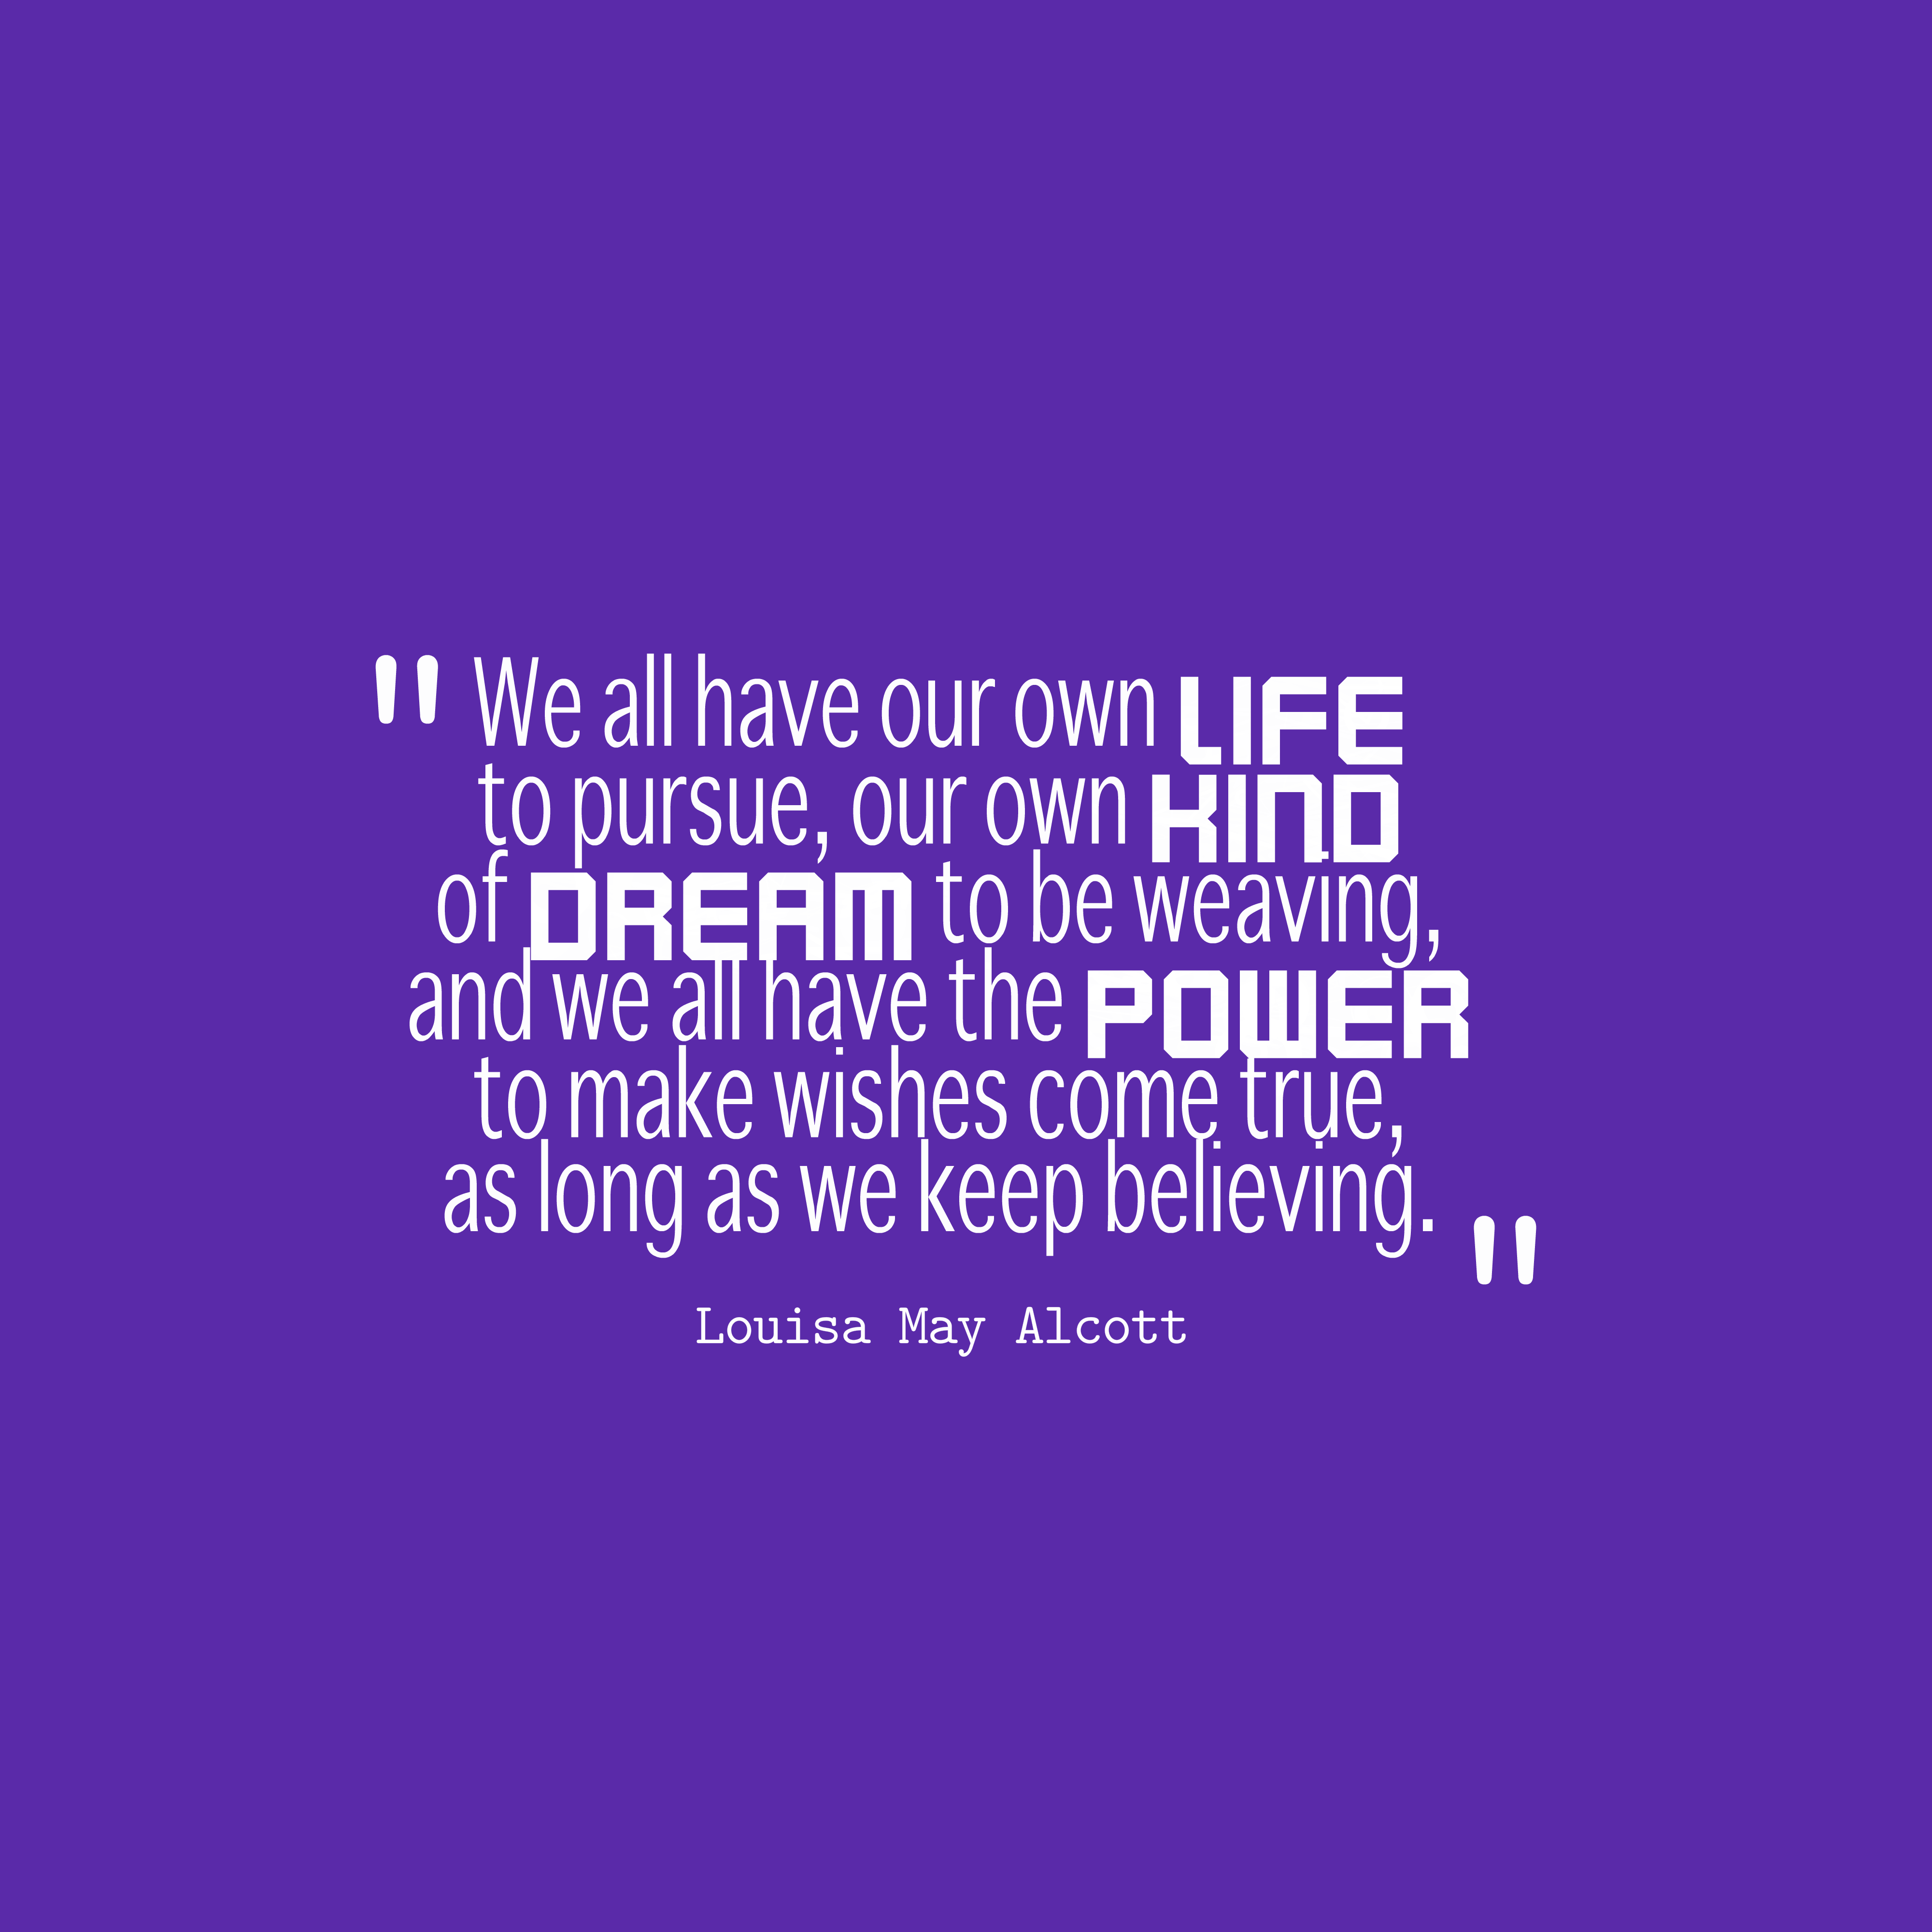 Quotes image of We all have our own life to pursue, our own kind of dream to be weaving, and we all have the power to make wishes come true, as long as we keep believing.